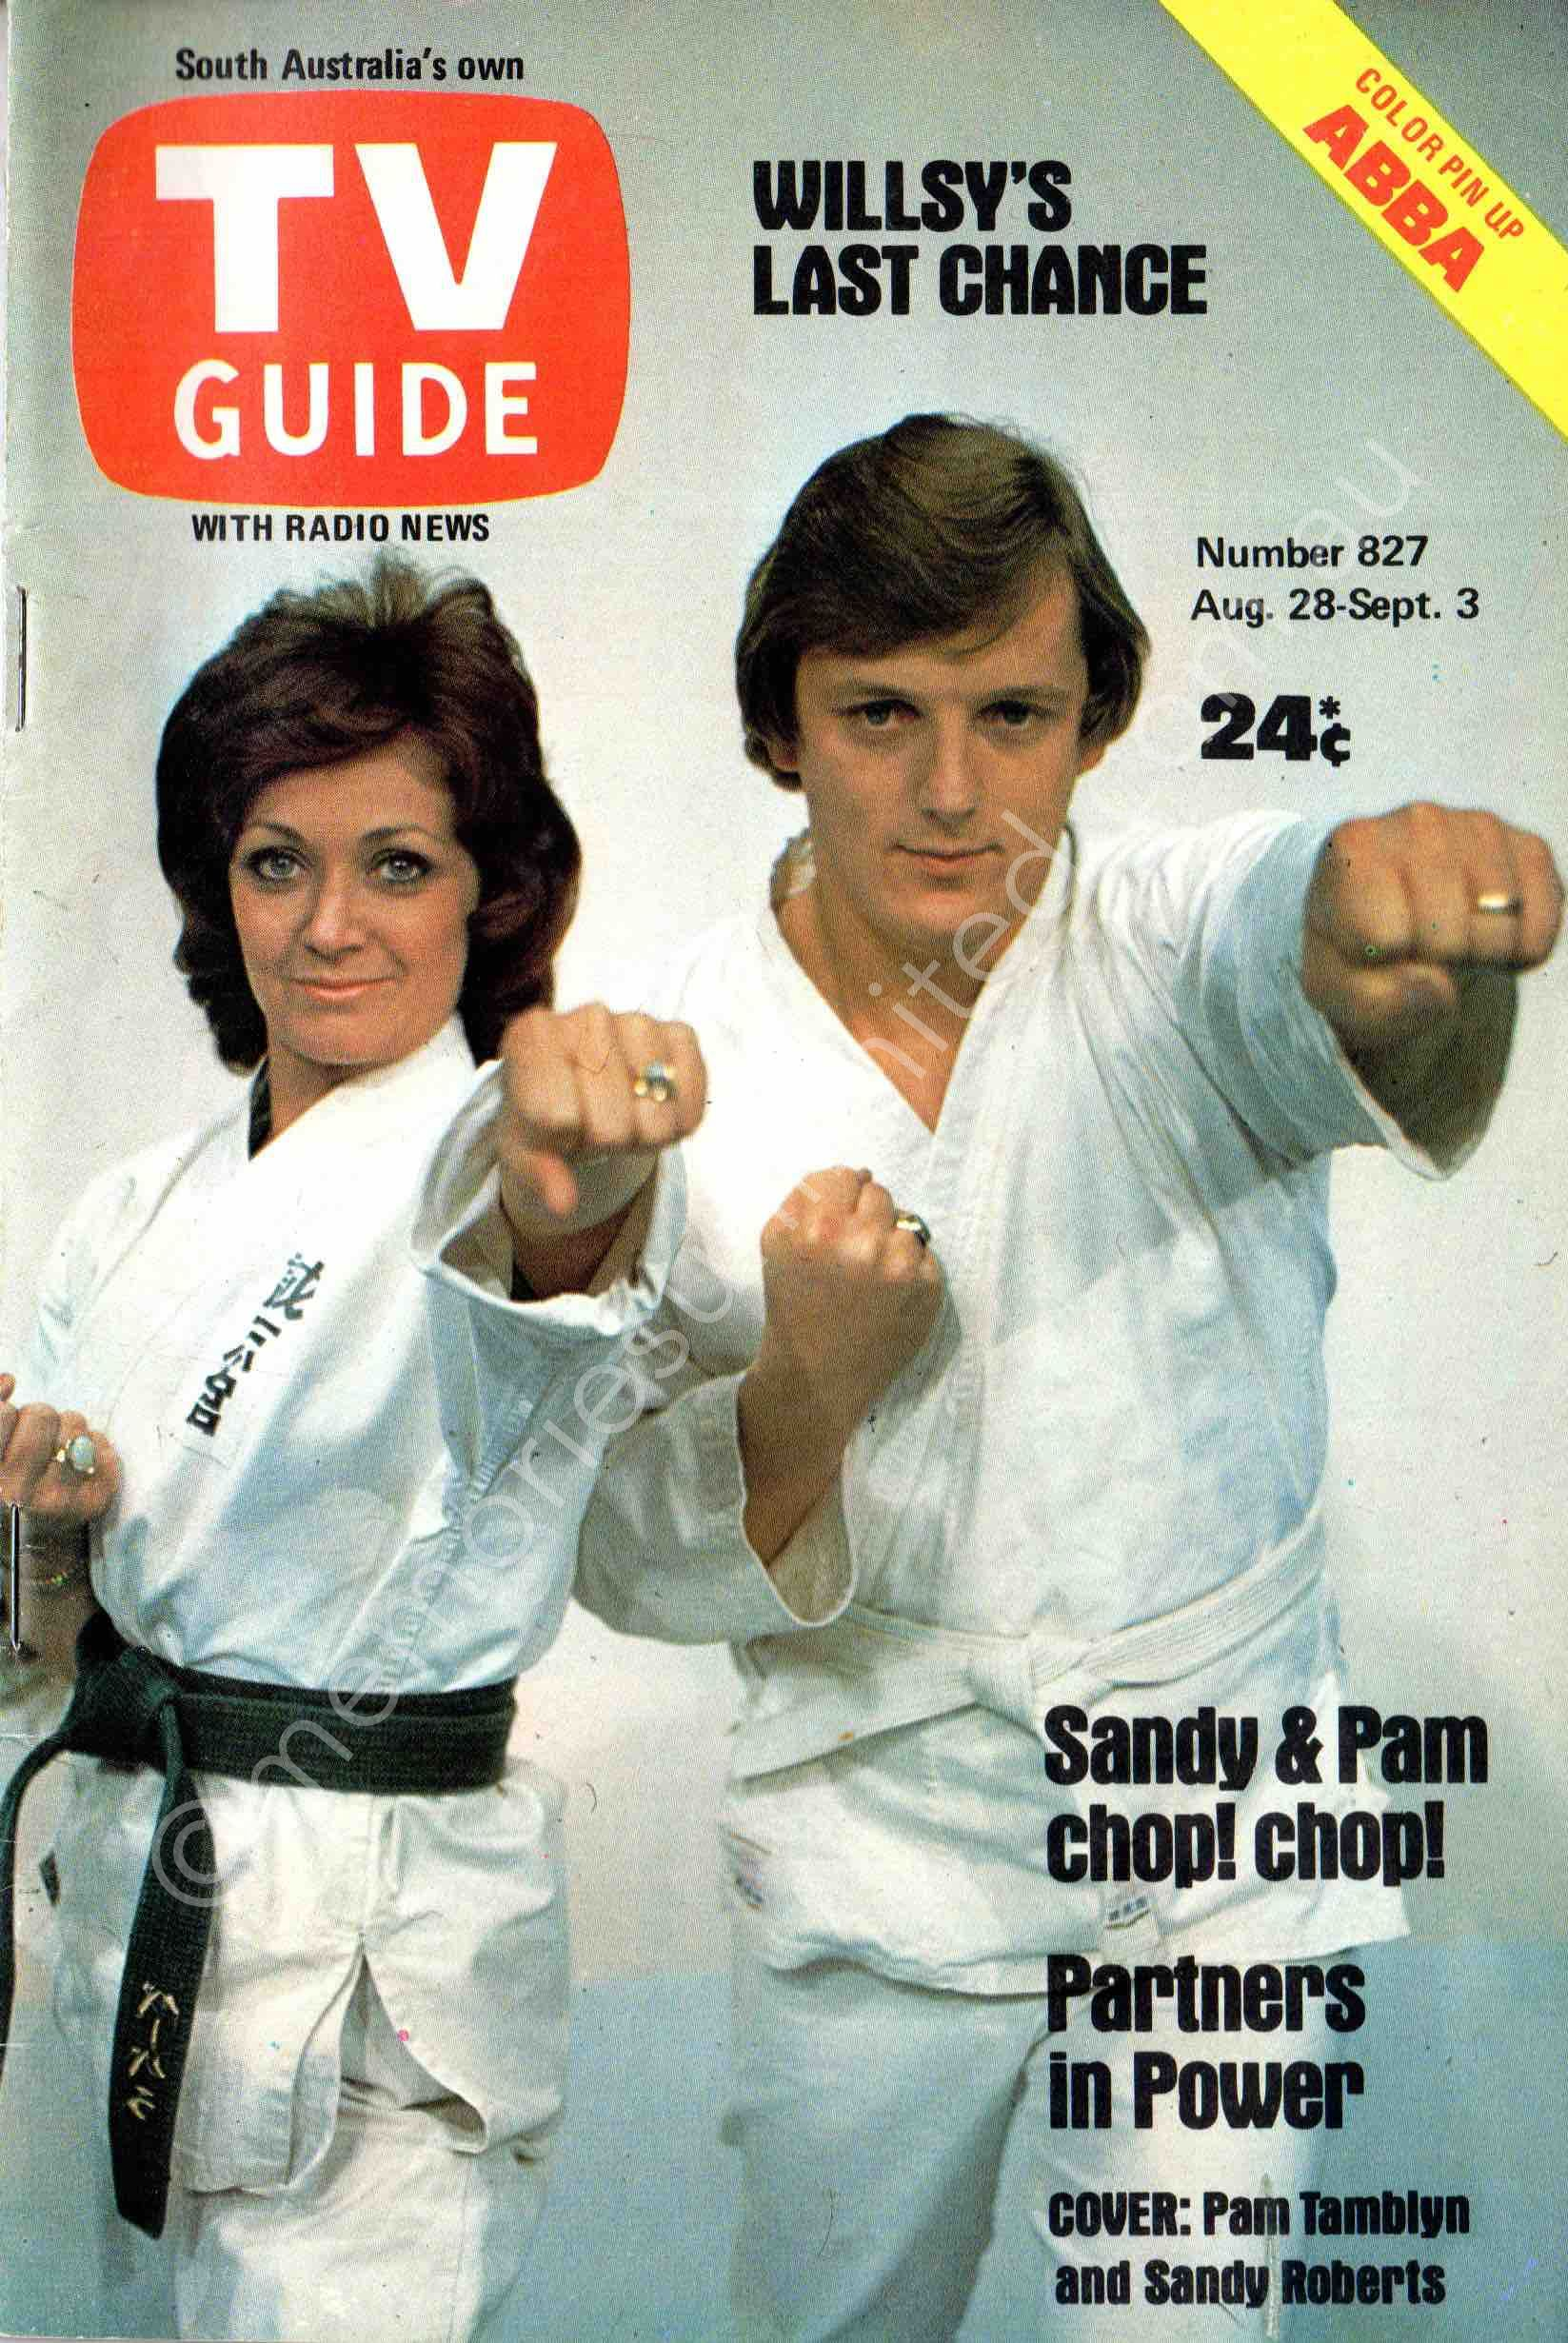 TV Guide 1976 August 28 (South Australia)